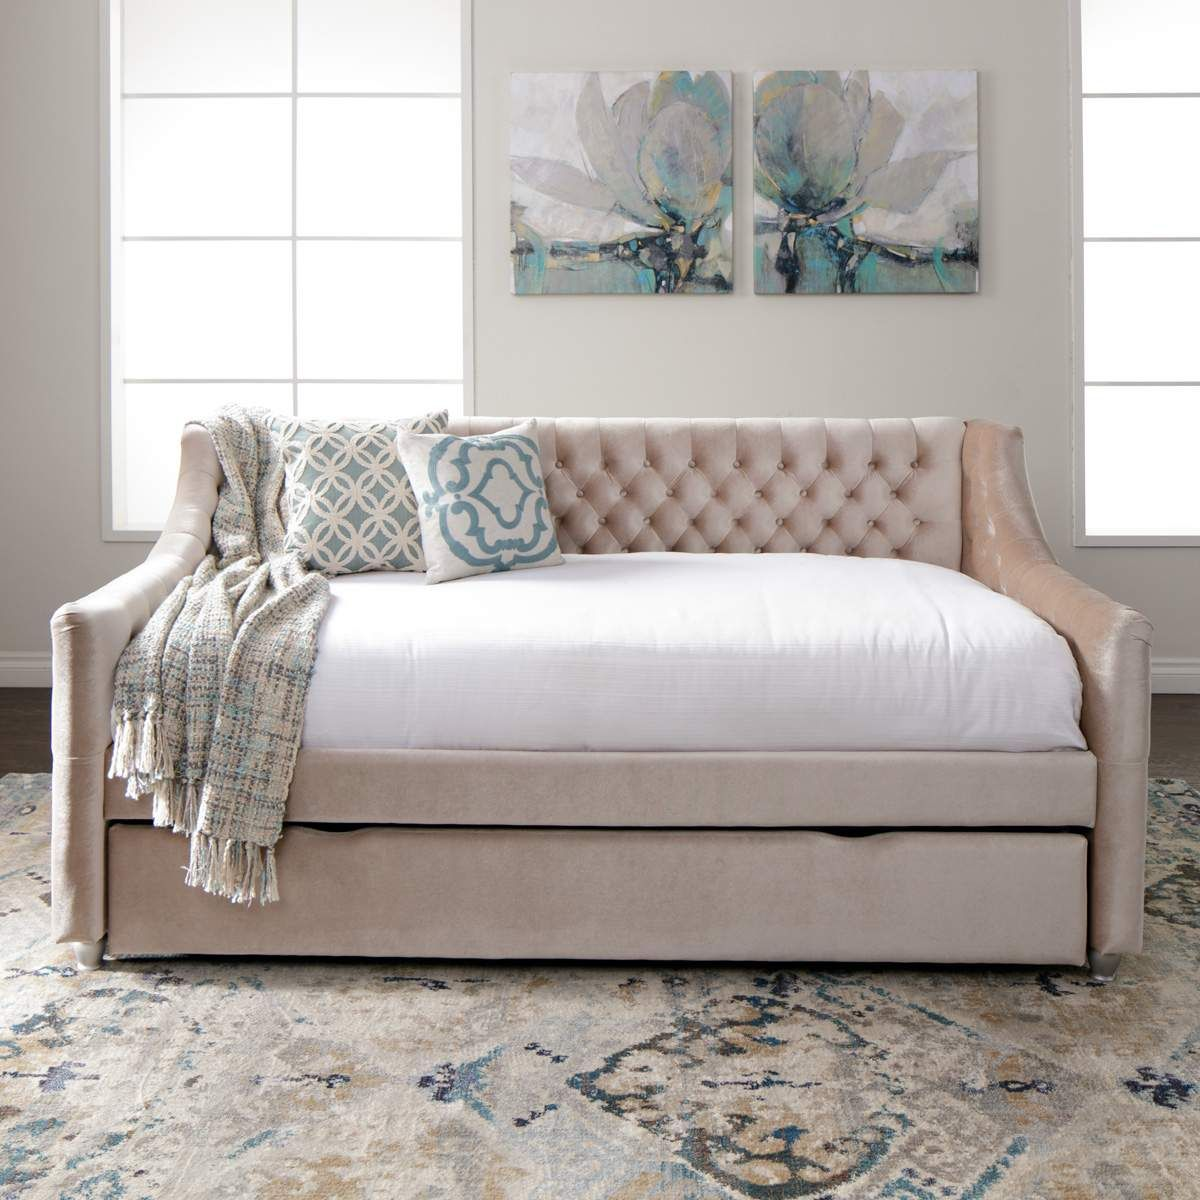 Add Extra Style And Room For Guests With The Vivvian